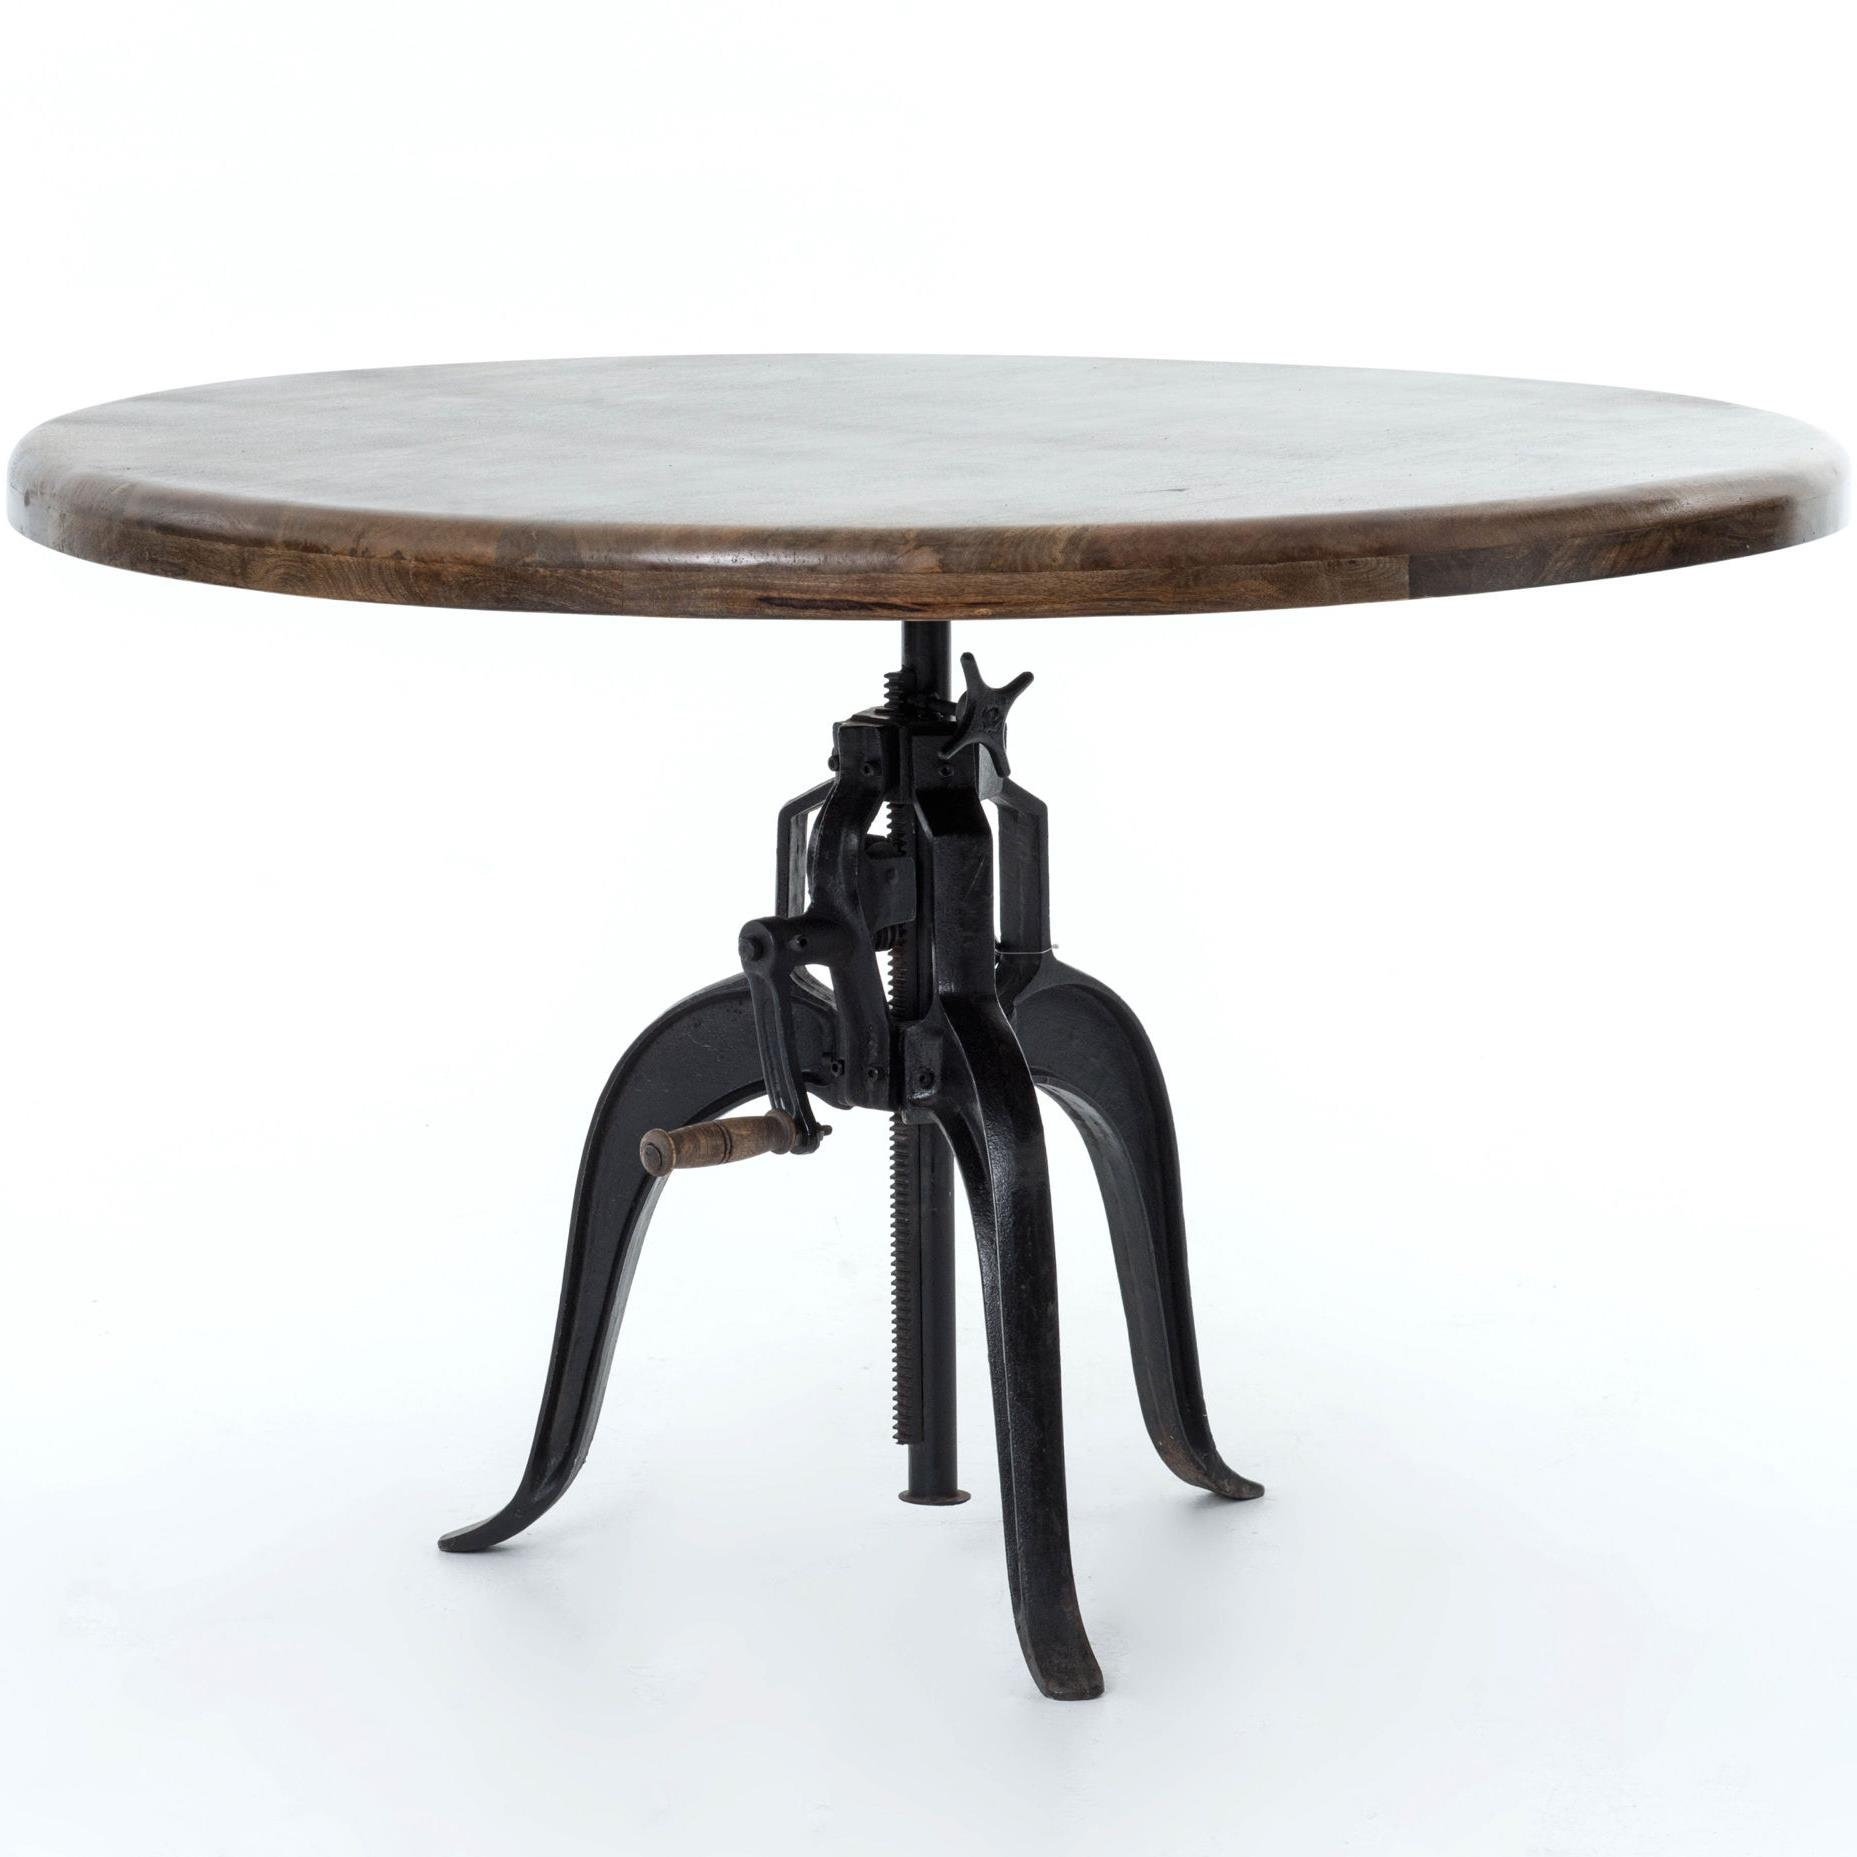 Adjustable Round Dining Table with Cast Iron Base by Four Hands